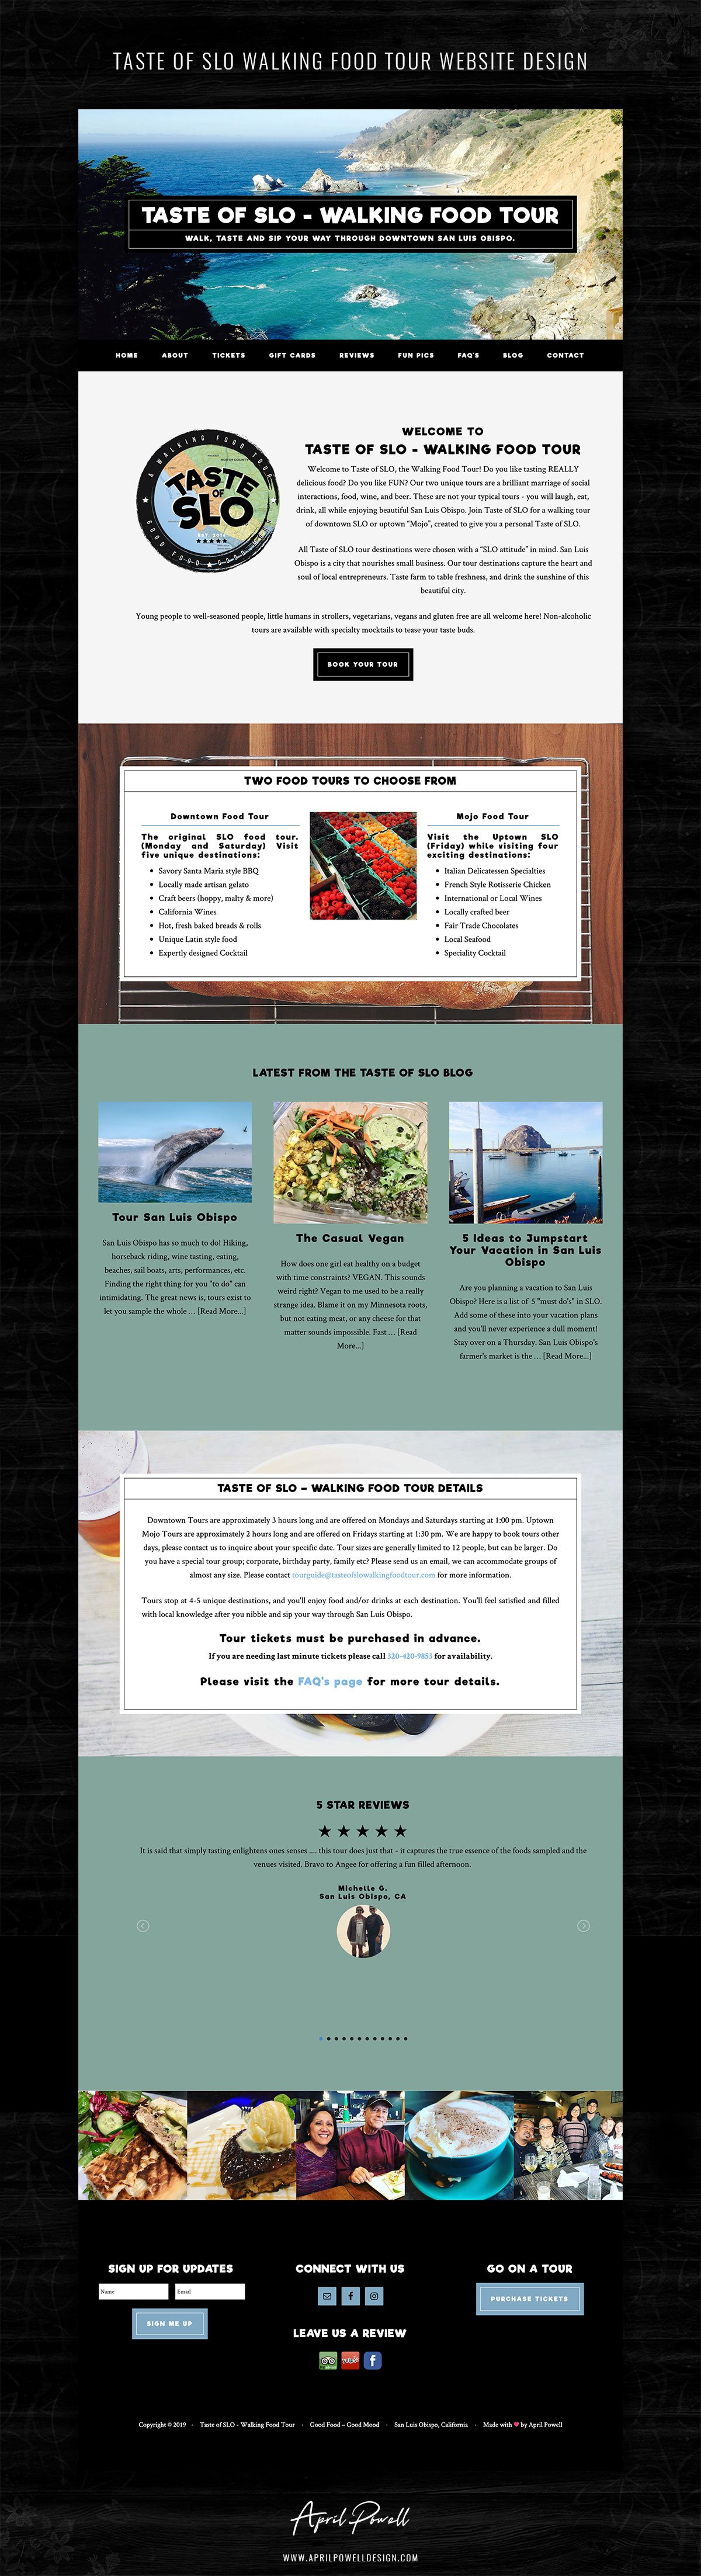 website design san luis obispo california from branding and design portfolio